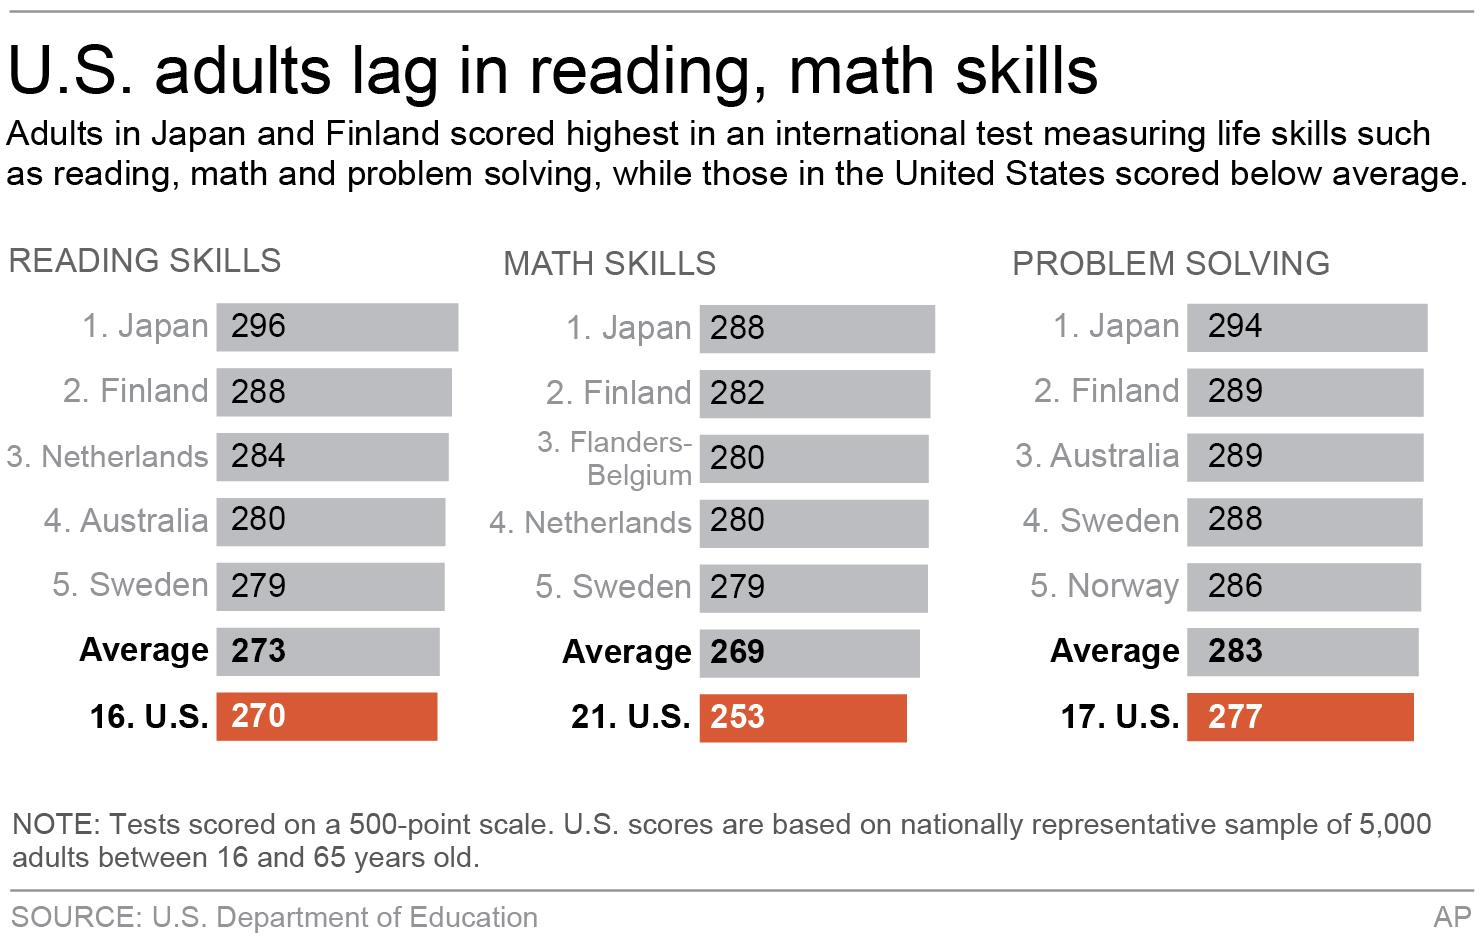 National reading average for adults